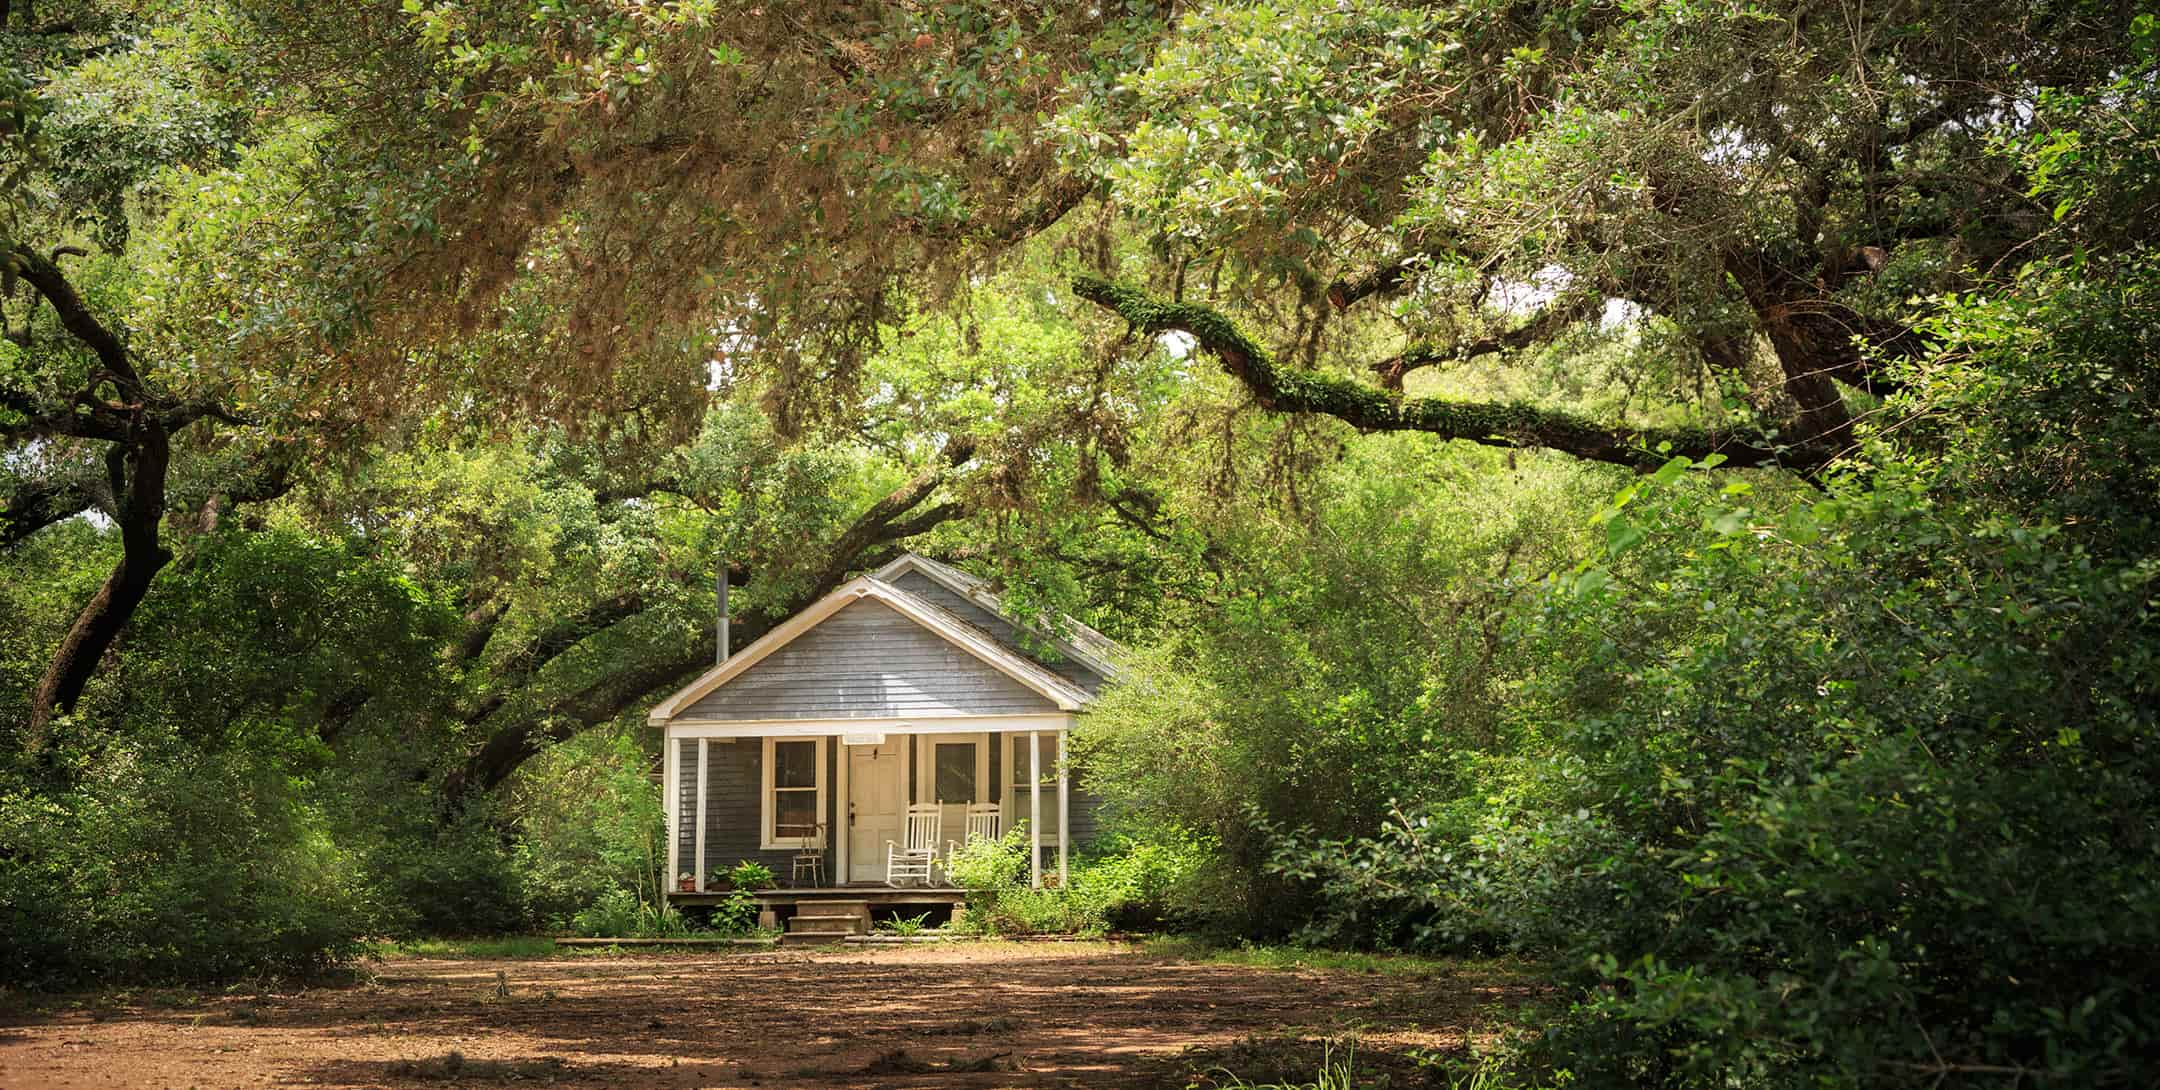 Bluebonnet Bungalow - Private cabin rentals in Texas